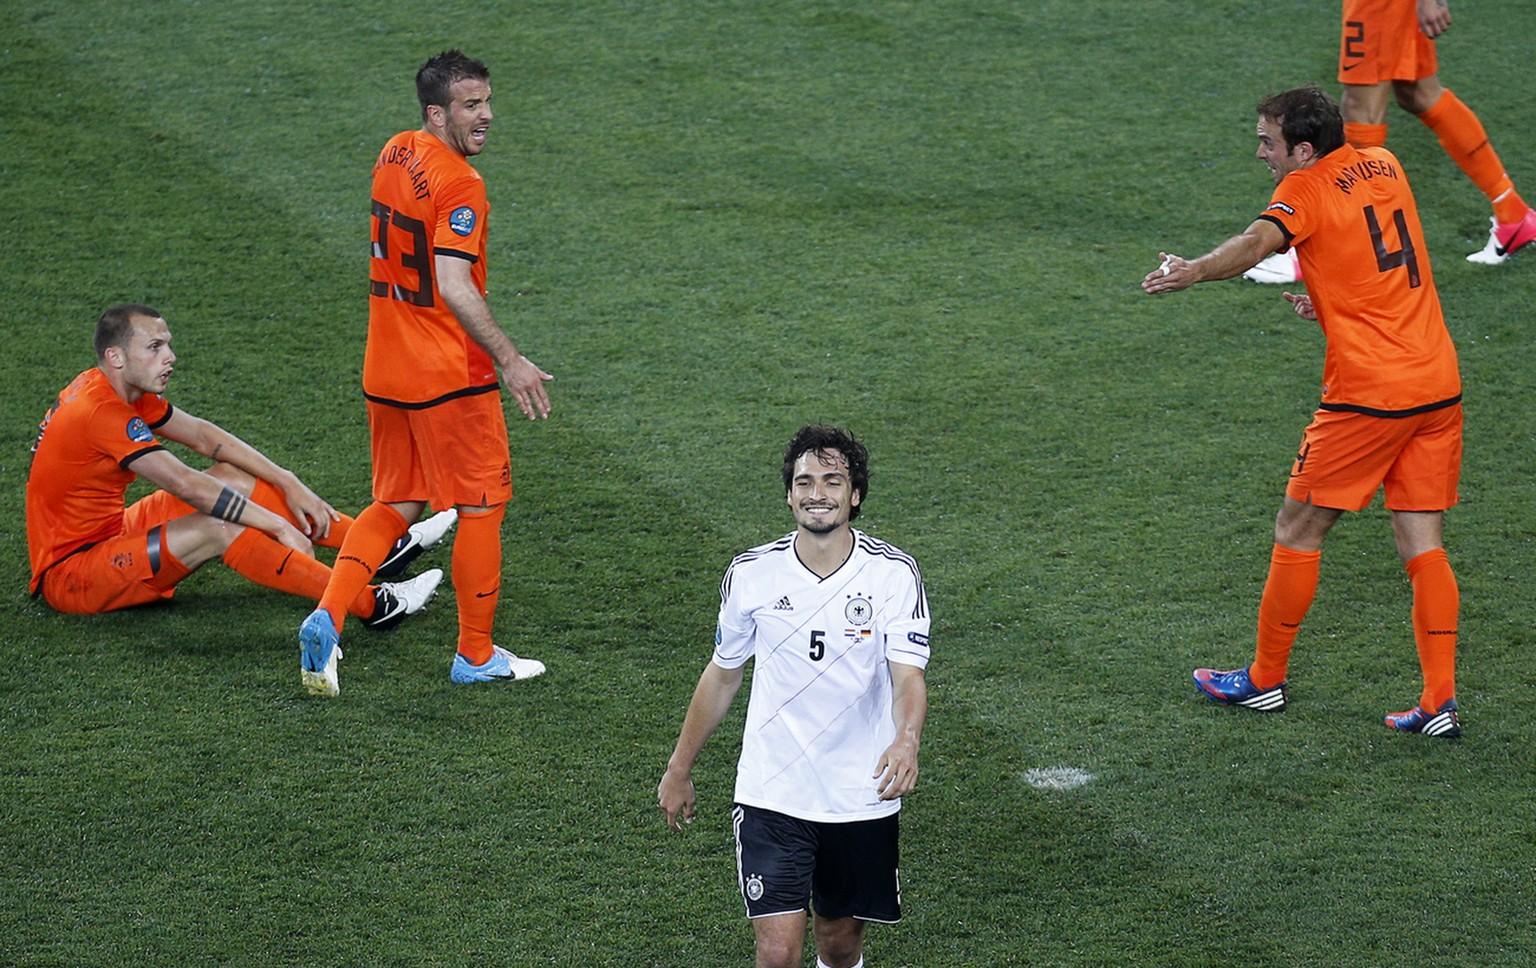 Germany's Mats Hummels smiles as Joris Mathijsen of the Netherlands, right, and Rafael van der Vaart, second left, argue during the Euro 2012 soccer championship Group B match between the Netherlands and Germany in Kharkiv, Ukraine, Wednesday, June 13, 2012. (AP Photo/Vadim Ghirda)